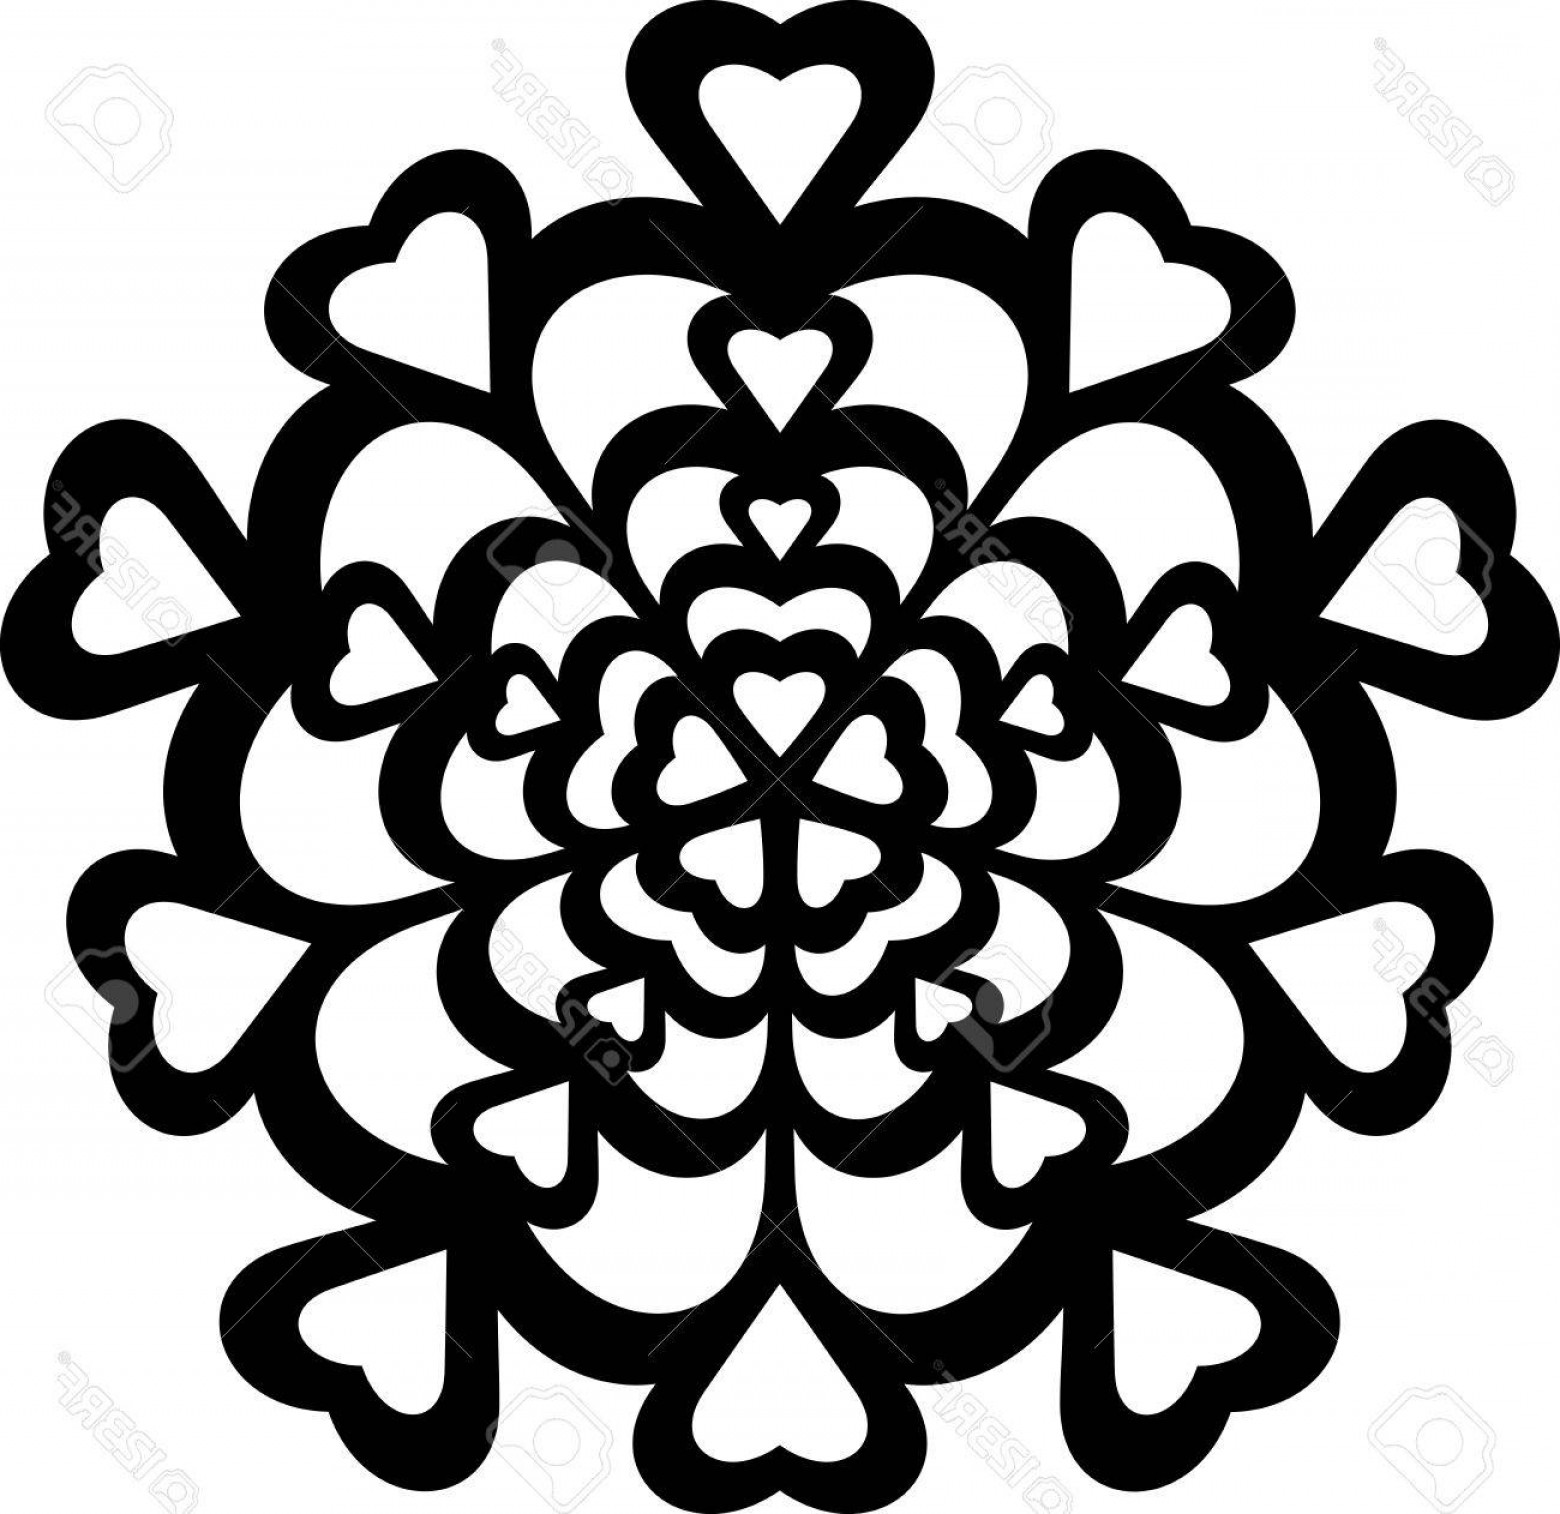 Vector CNC Designs: Photostock Vector Illustration Of Great Ornaments Hearts Silhouette Ready For Cnc And Prints